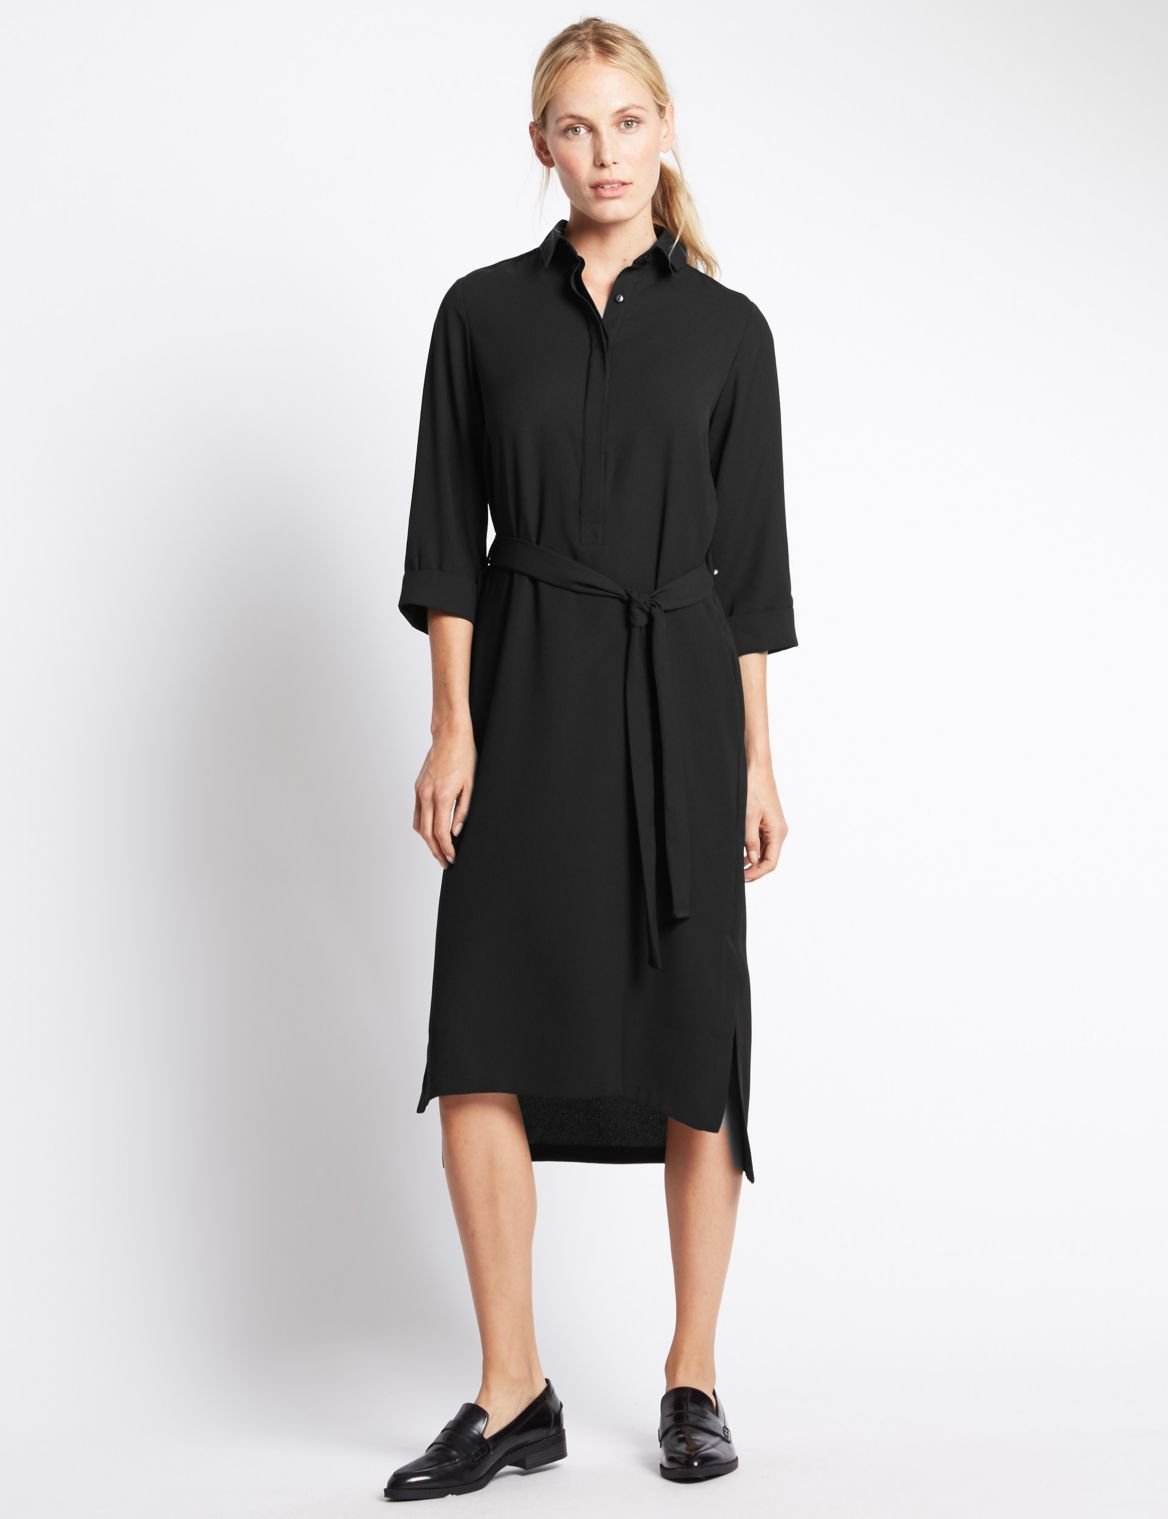 3/4 Sleeve Shirt Dress with Belt black